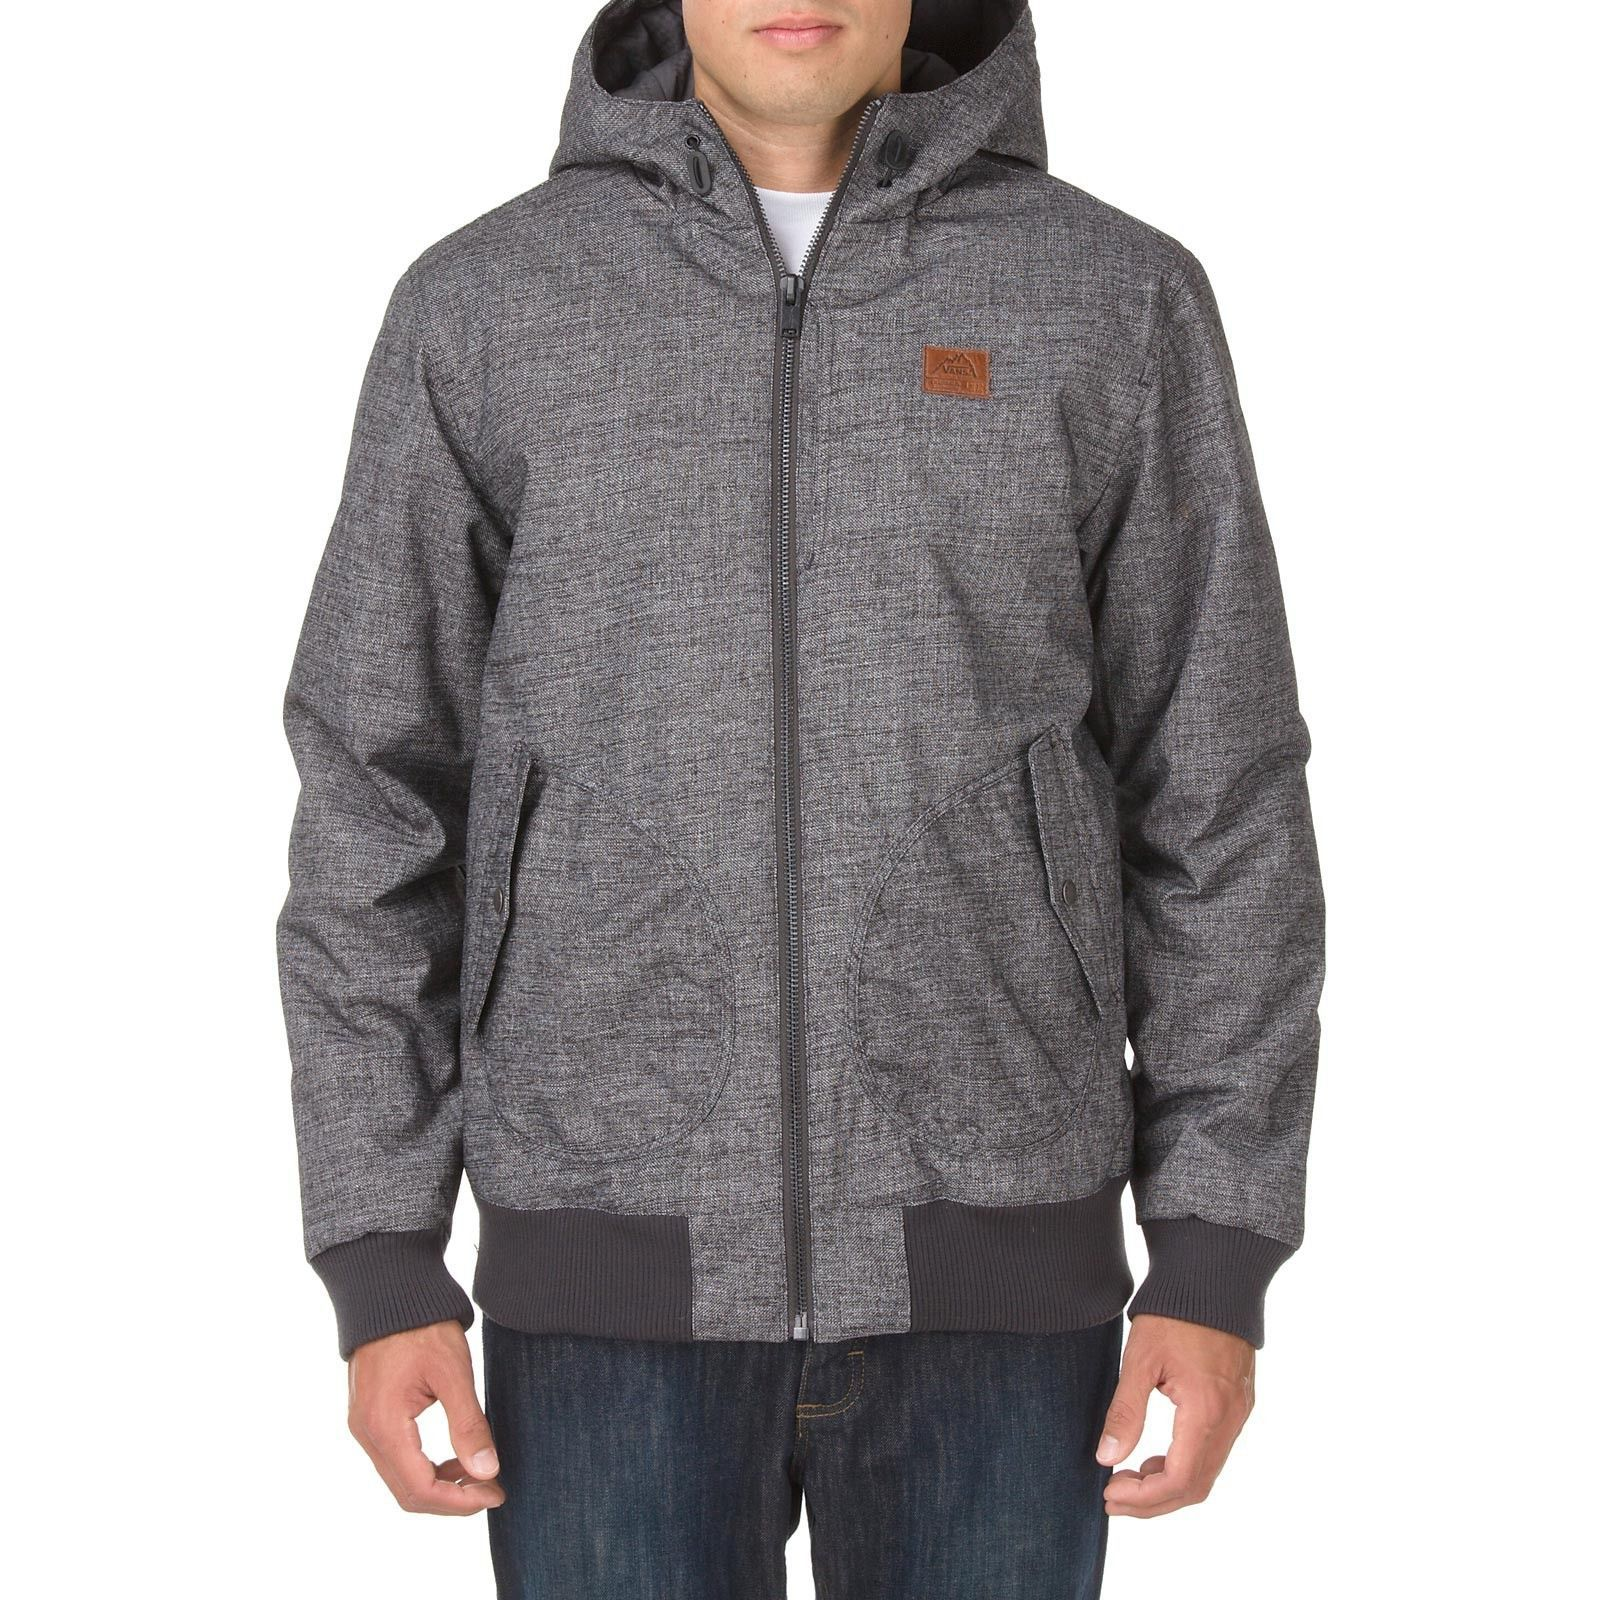 Vans Men's RUTHERFORD MOUNTAIN EDITION Hooded Jacket Coat Gray/Black PARKA SMALL